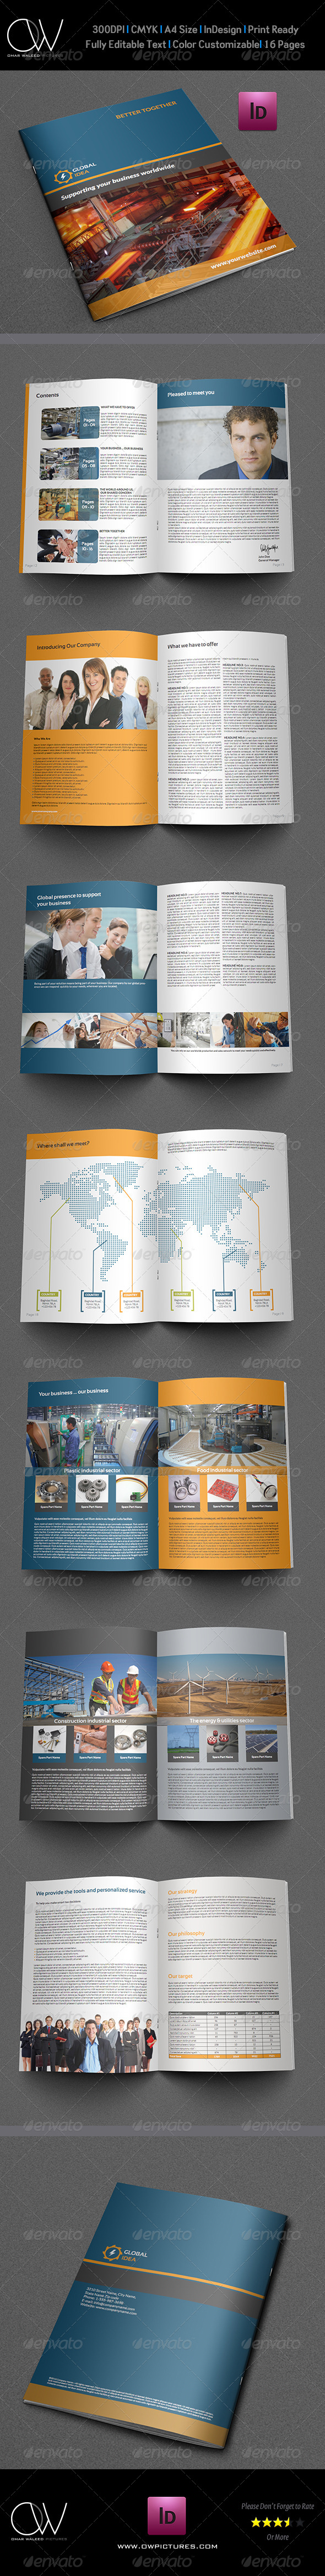 Corporate Business Brochure Template Vol.2 - Corporate Brochures